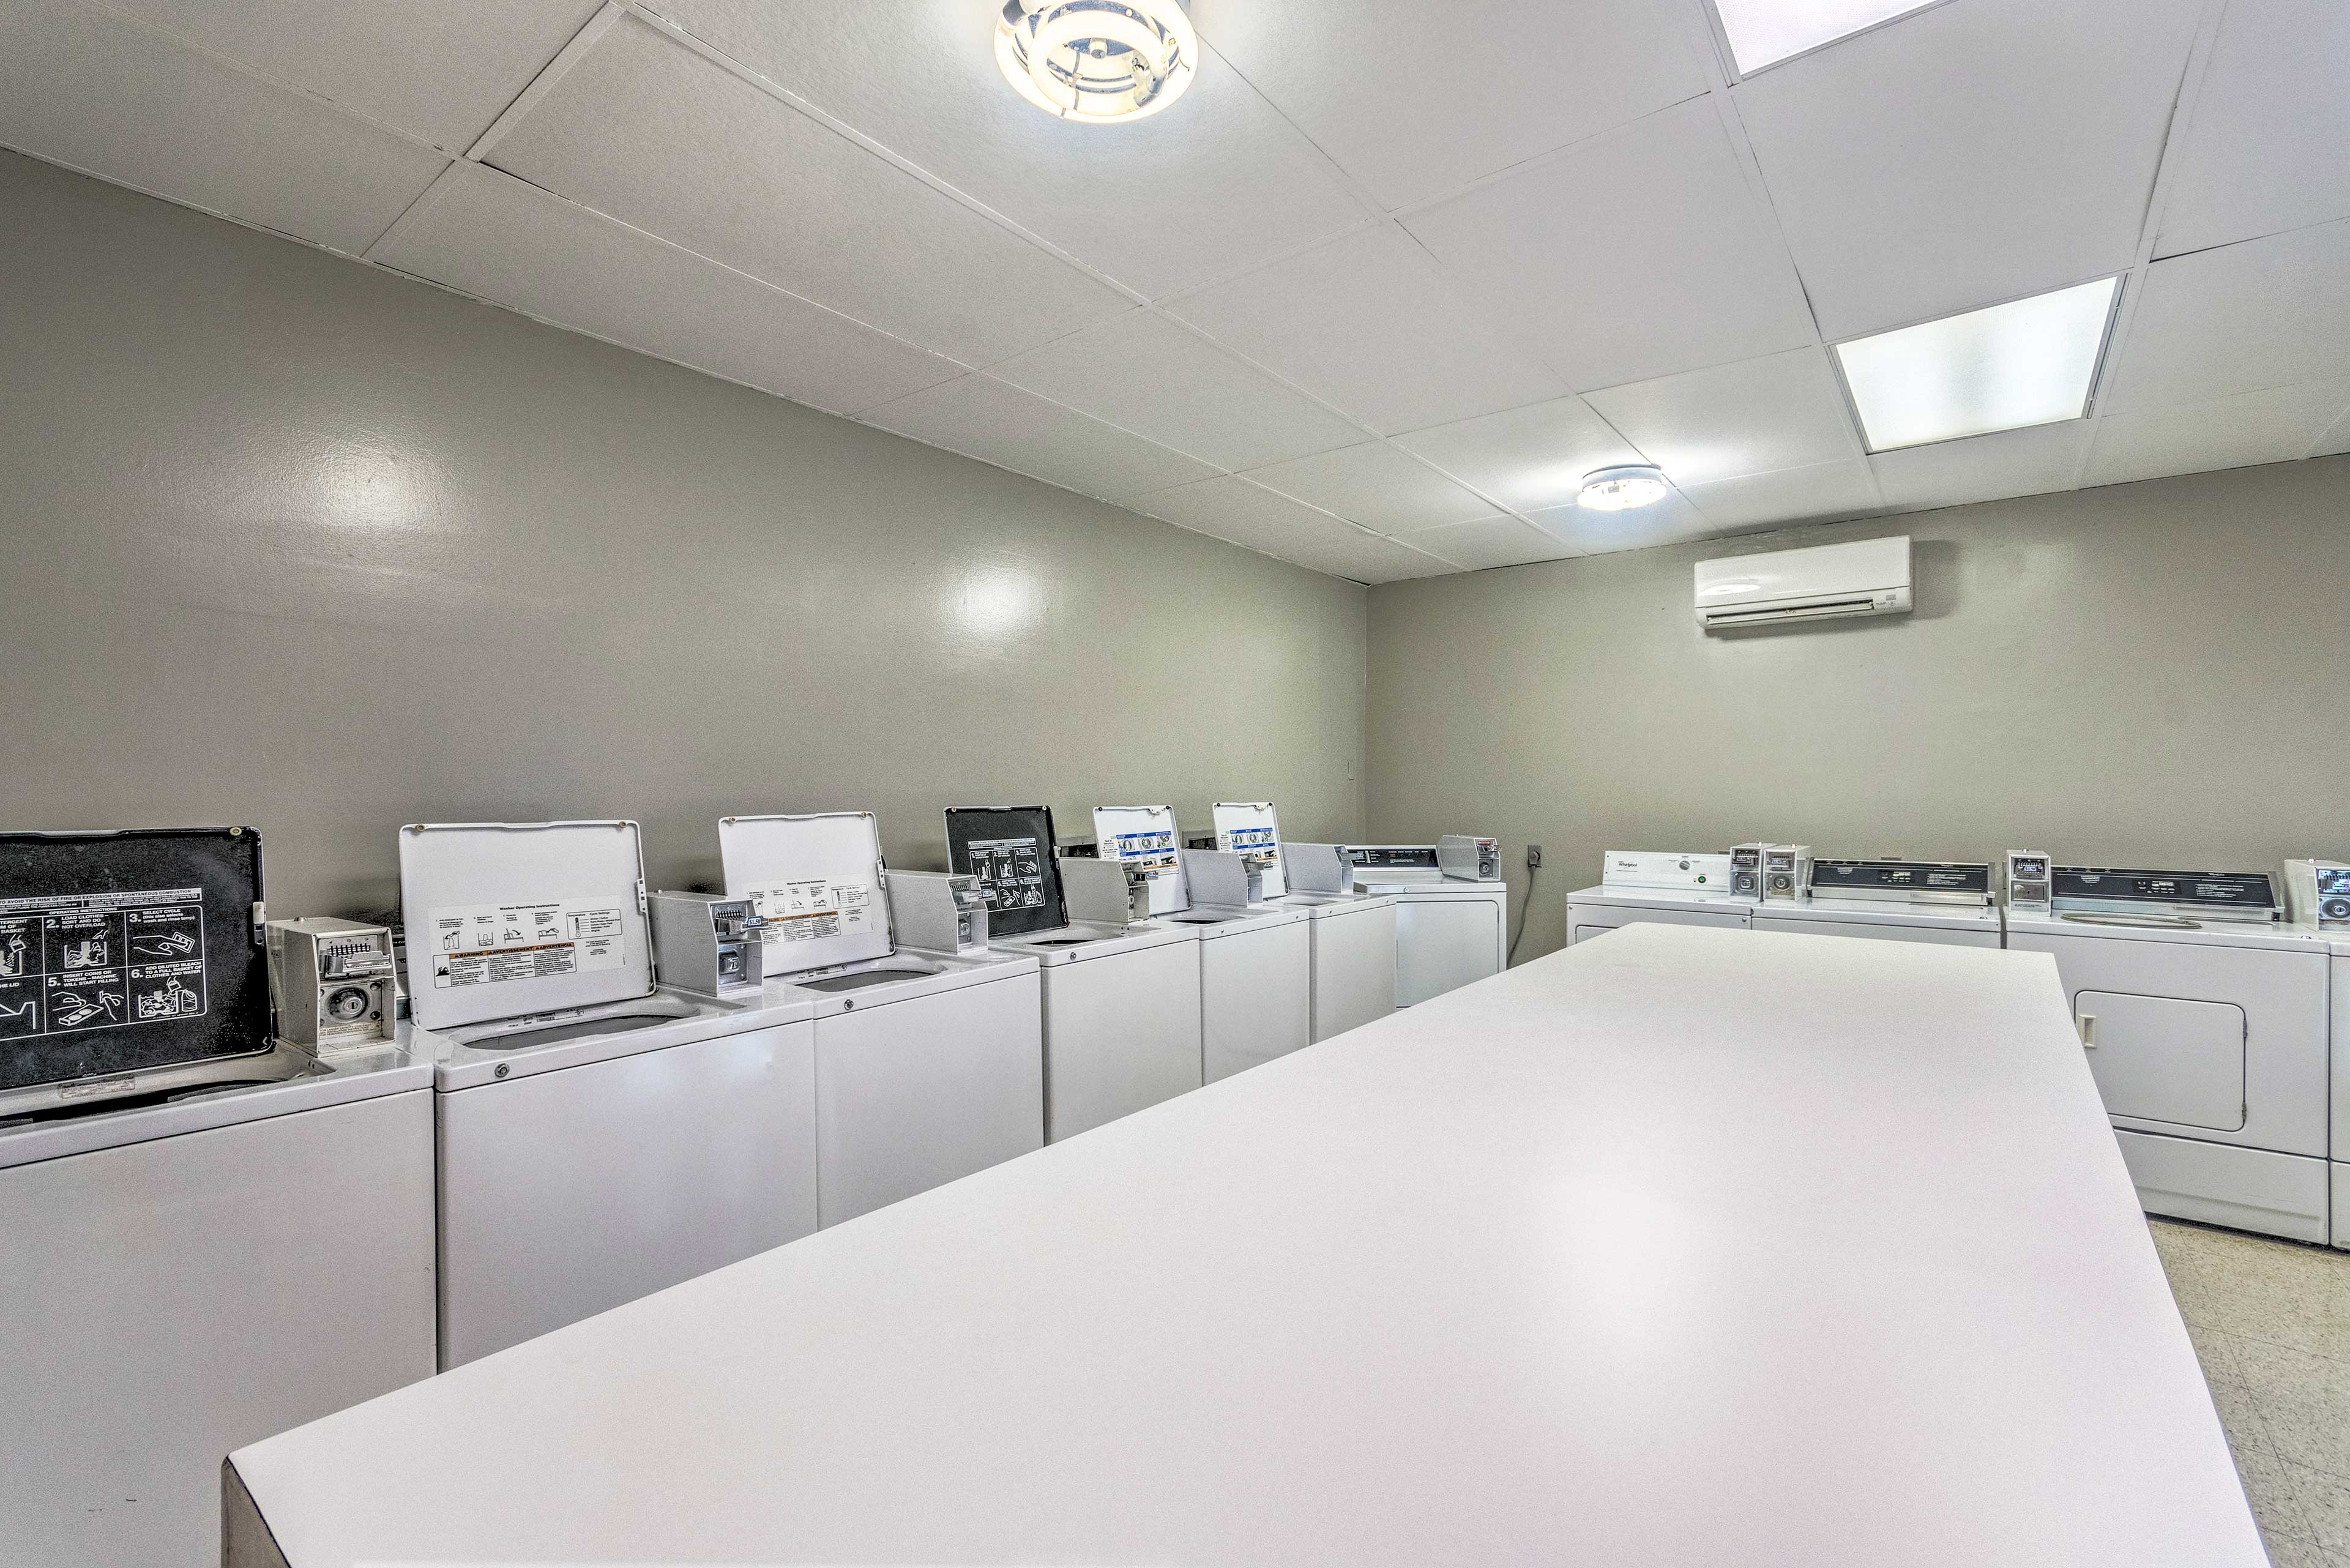 Coin-operated laundry machines are located onsite for your convenience.